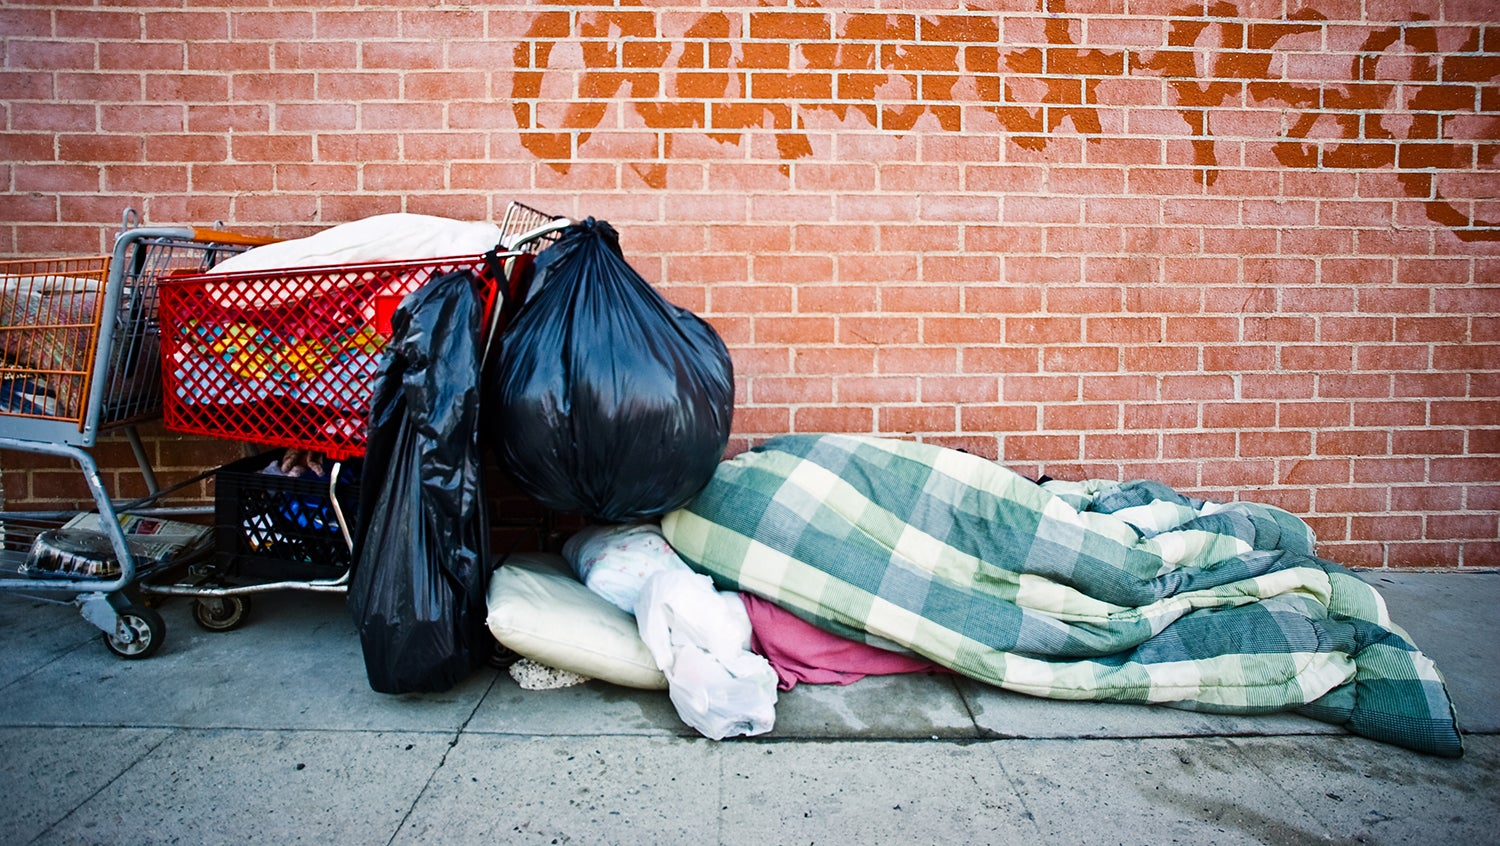 homeless person's belongings and bedding on street sidewalk